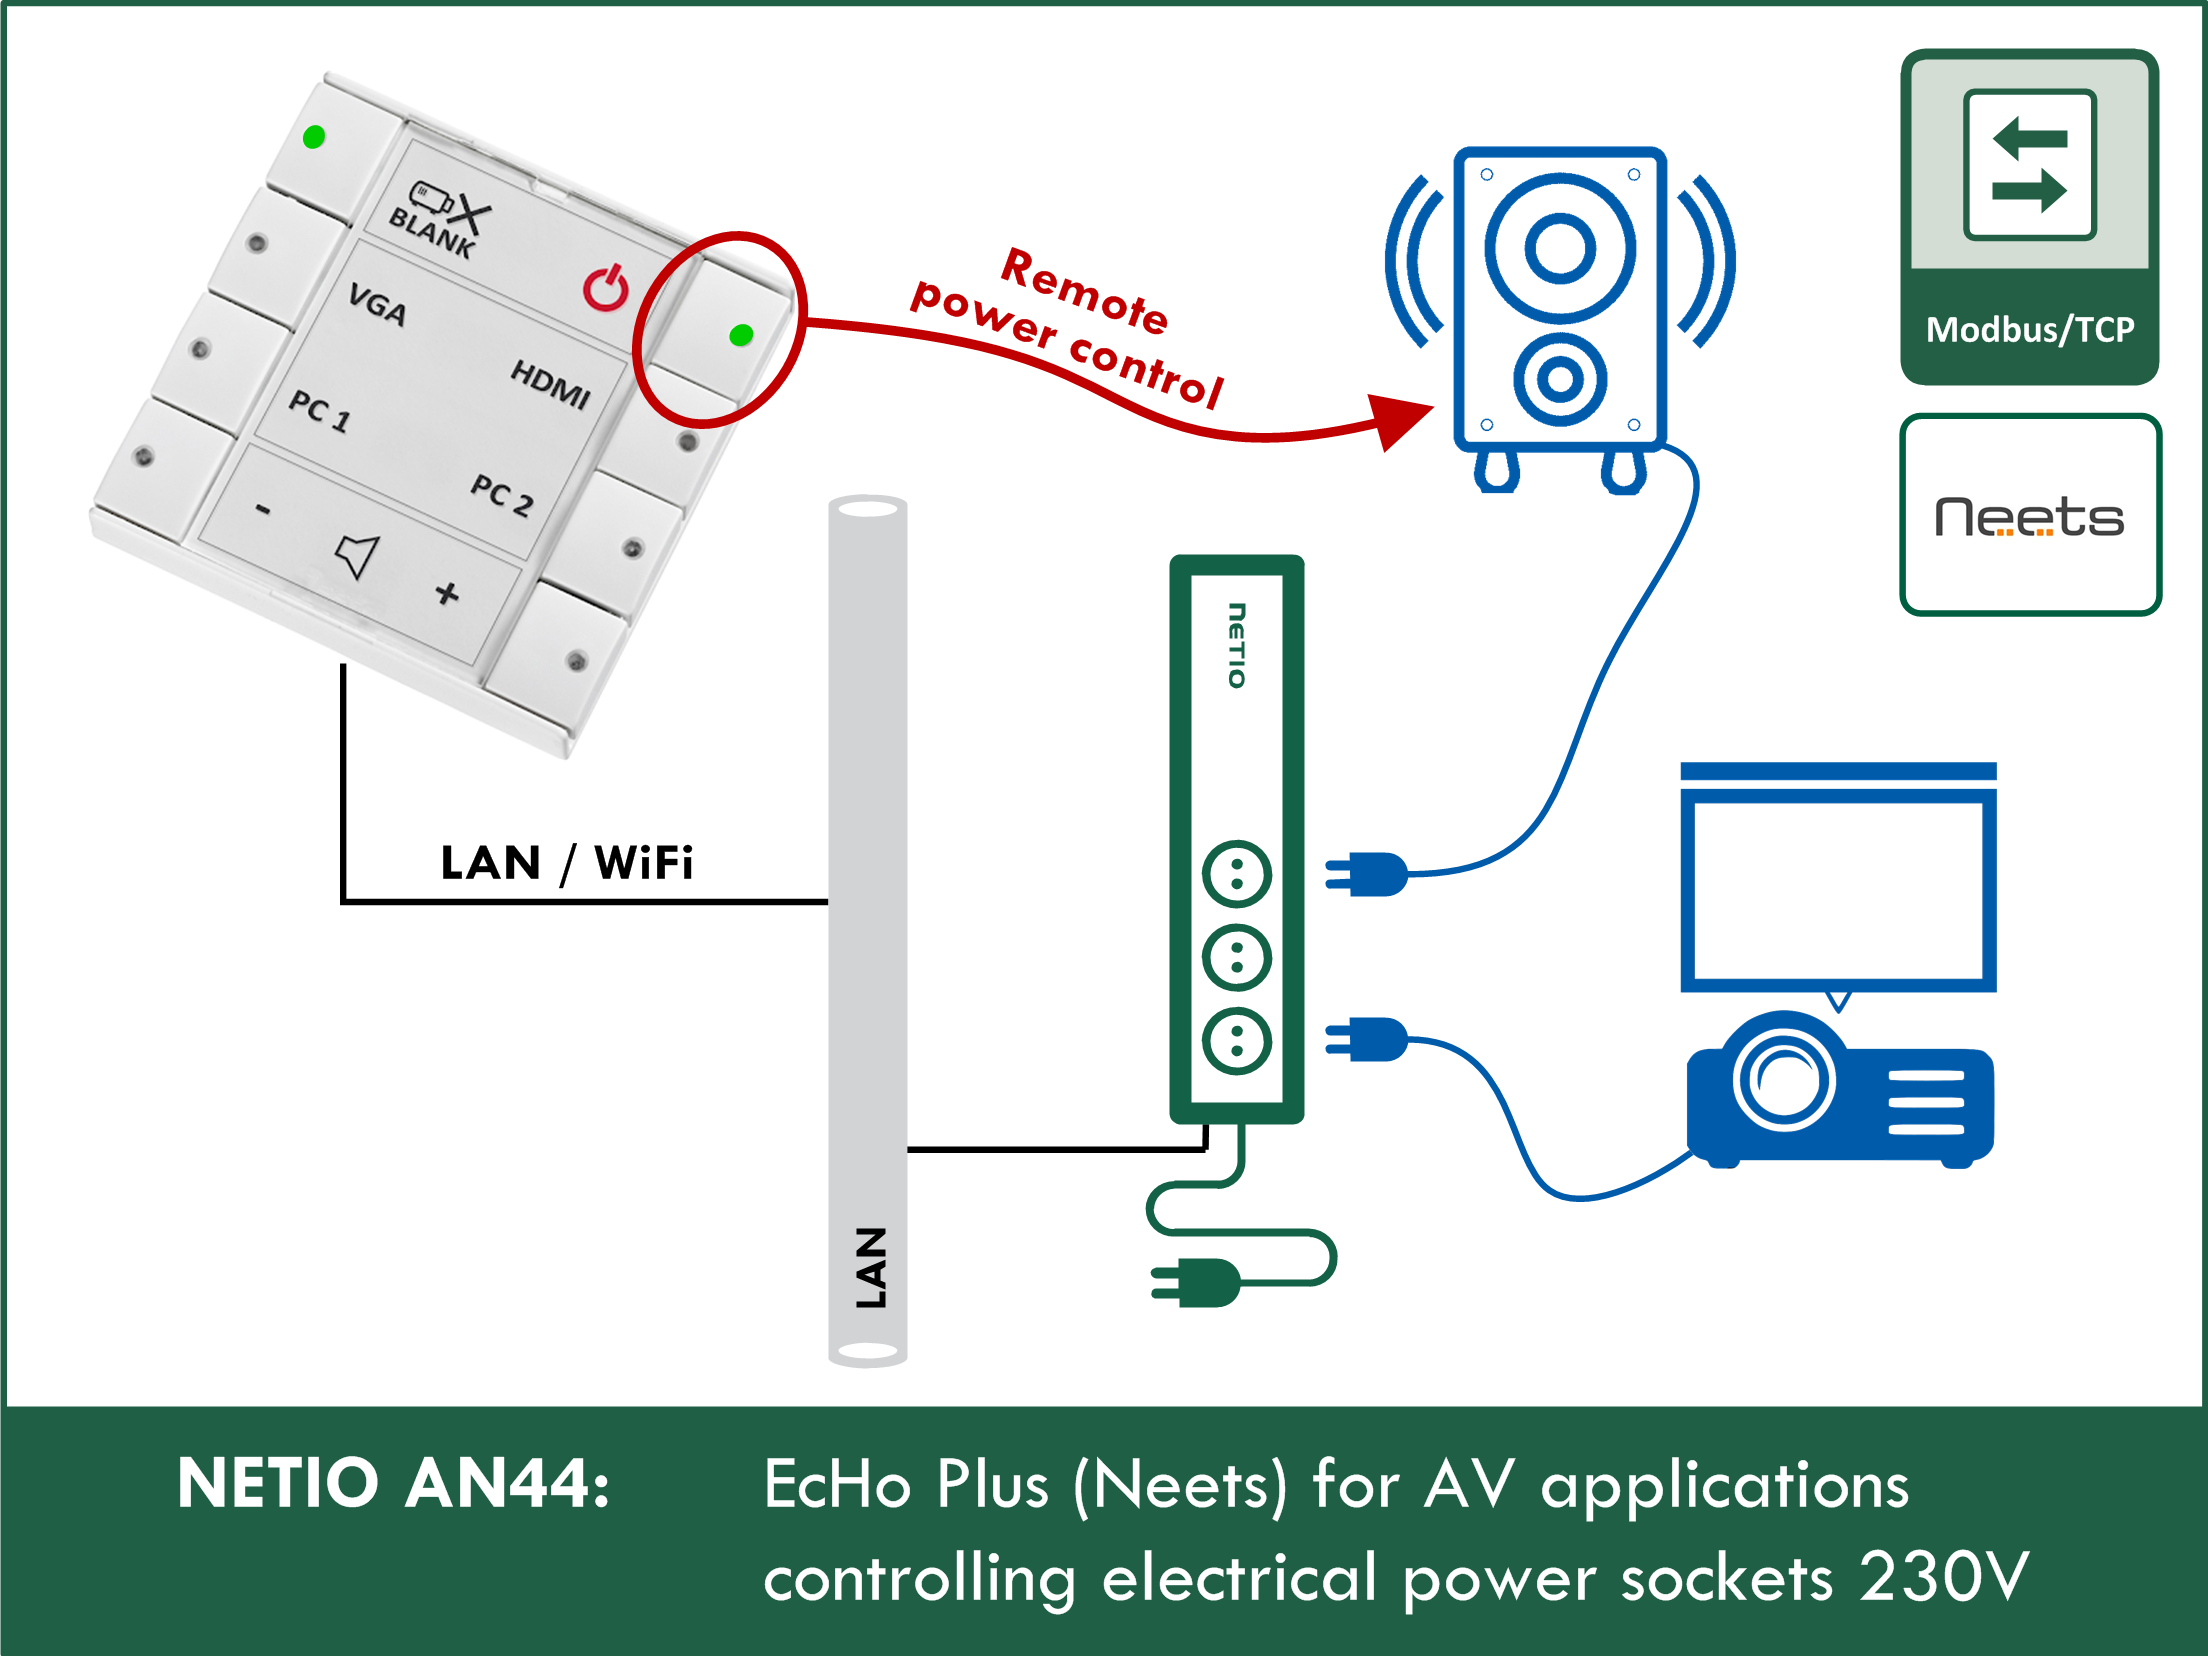 AN44 EcHo Plus (NEETS) for AV applications controlling electrical power sockets 230V